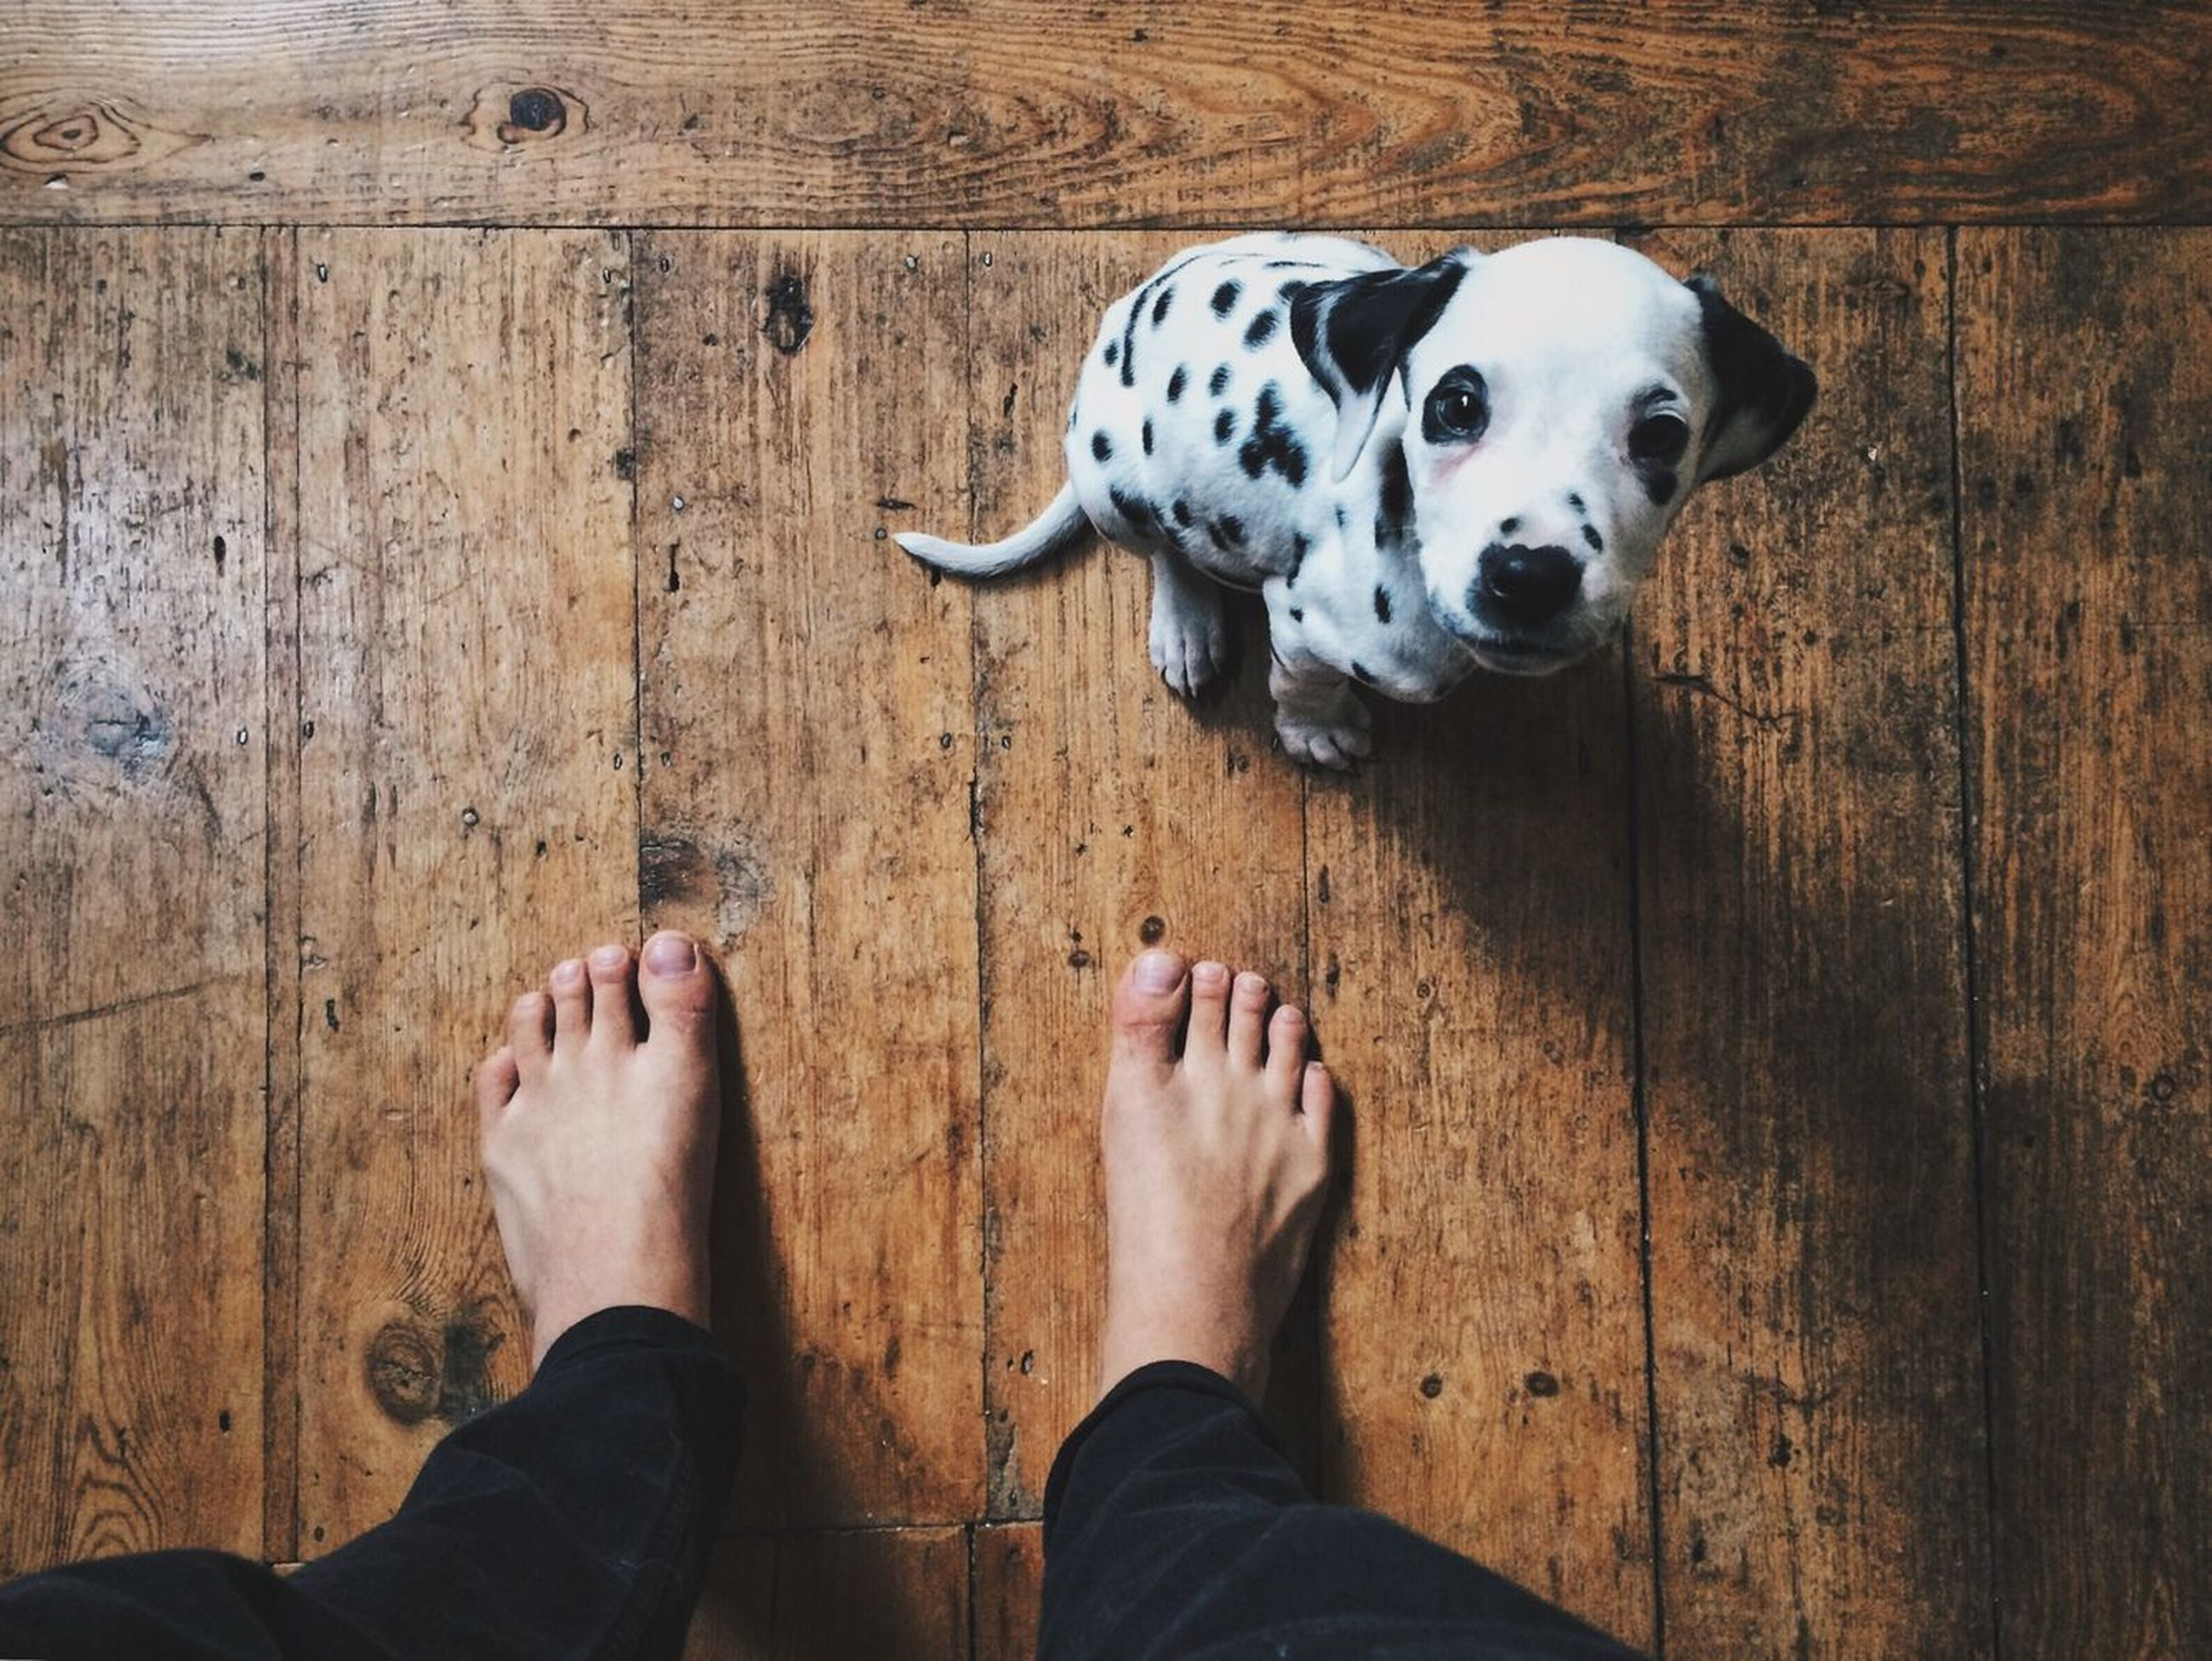 pets, mammal, dog, one animal, real people, domestic animals, one person, standing, lifestyles, low section, human leg, human body part, spotted, dalmatian dog, women, day, outdoors